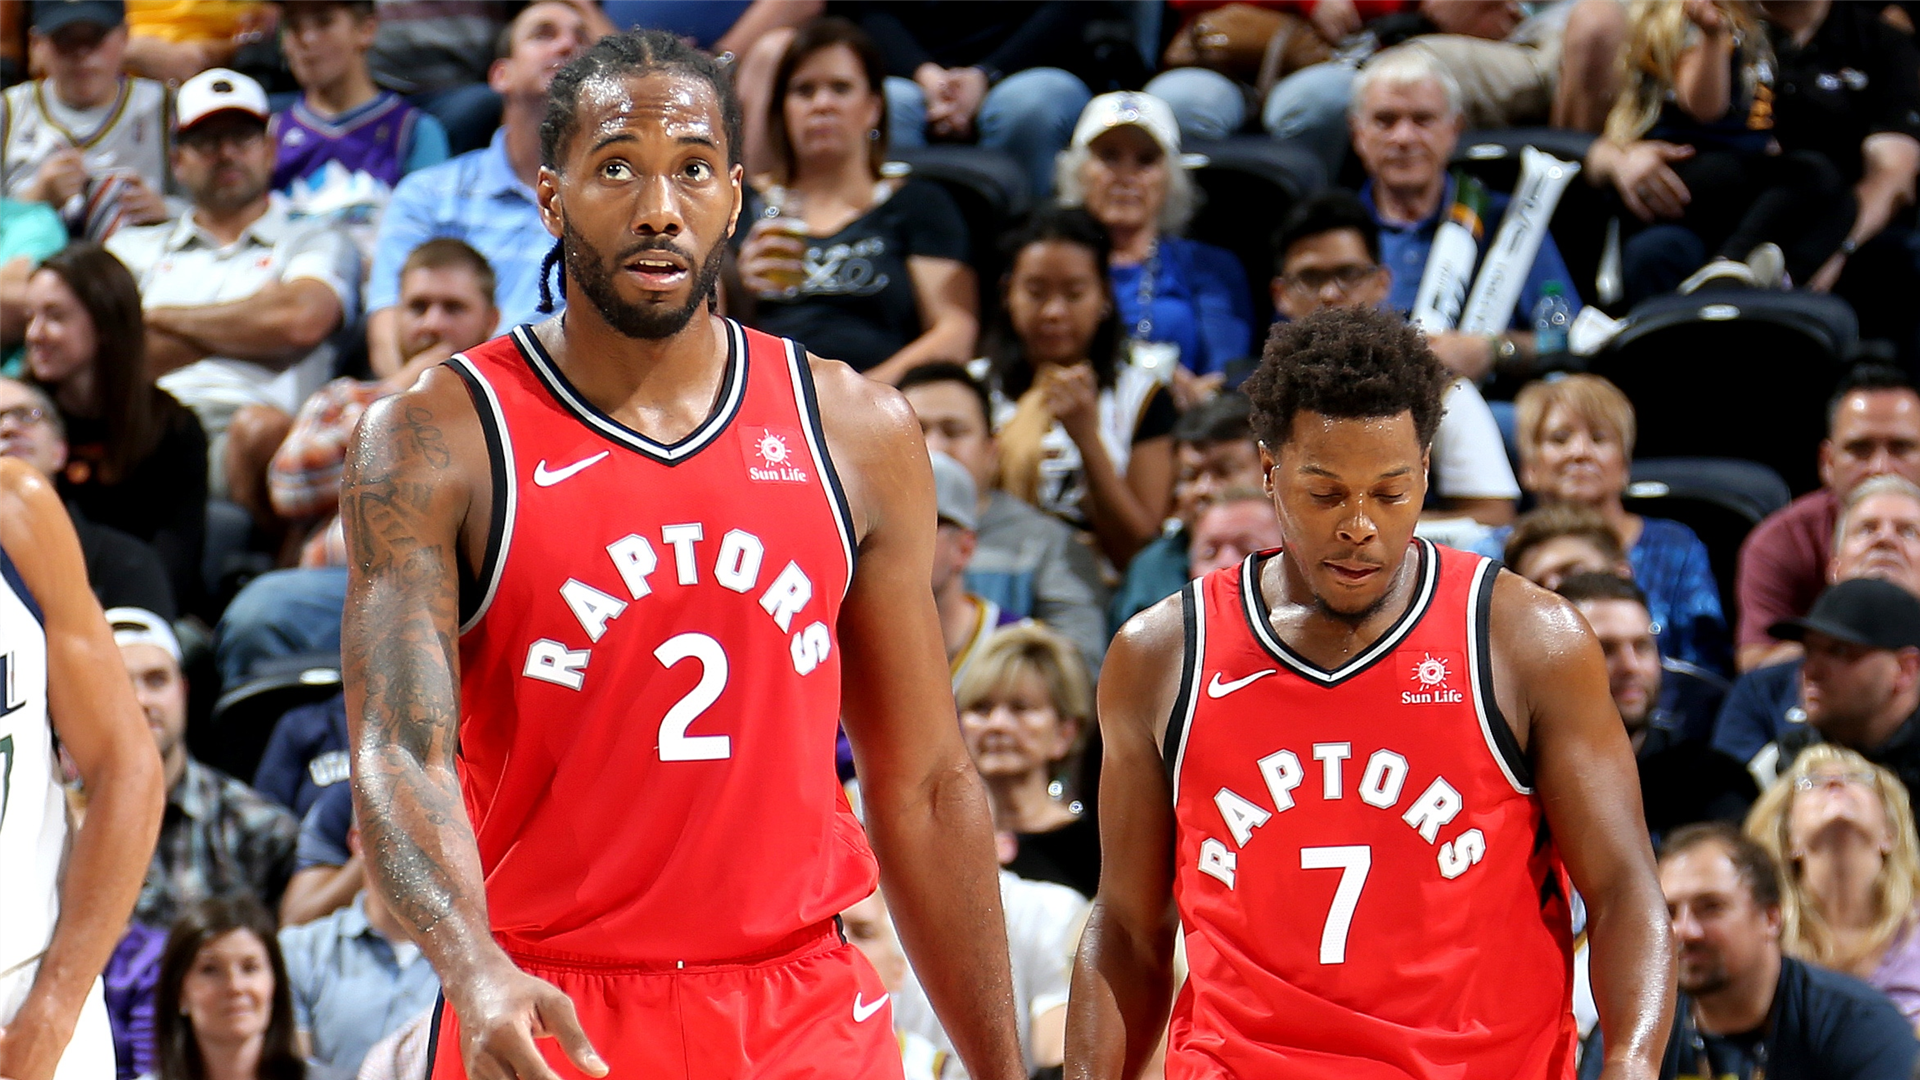 Raptors News: 2018-19 NBA Season Preview: What To Expect From The